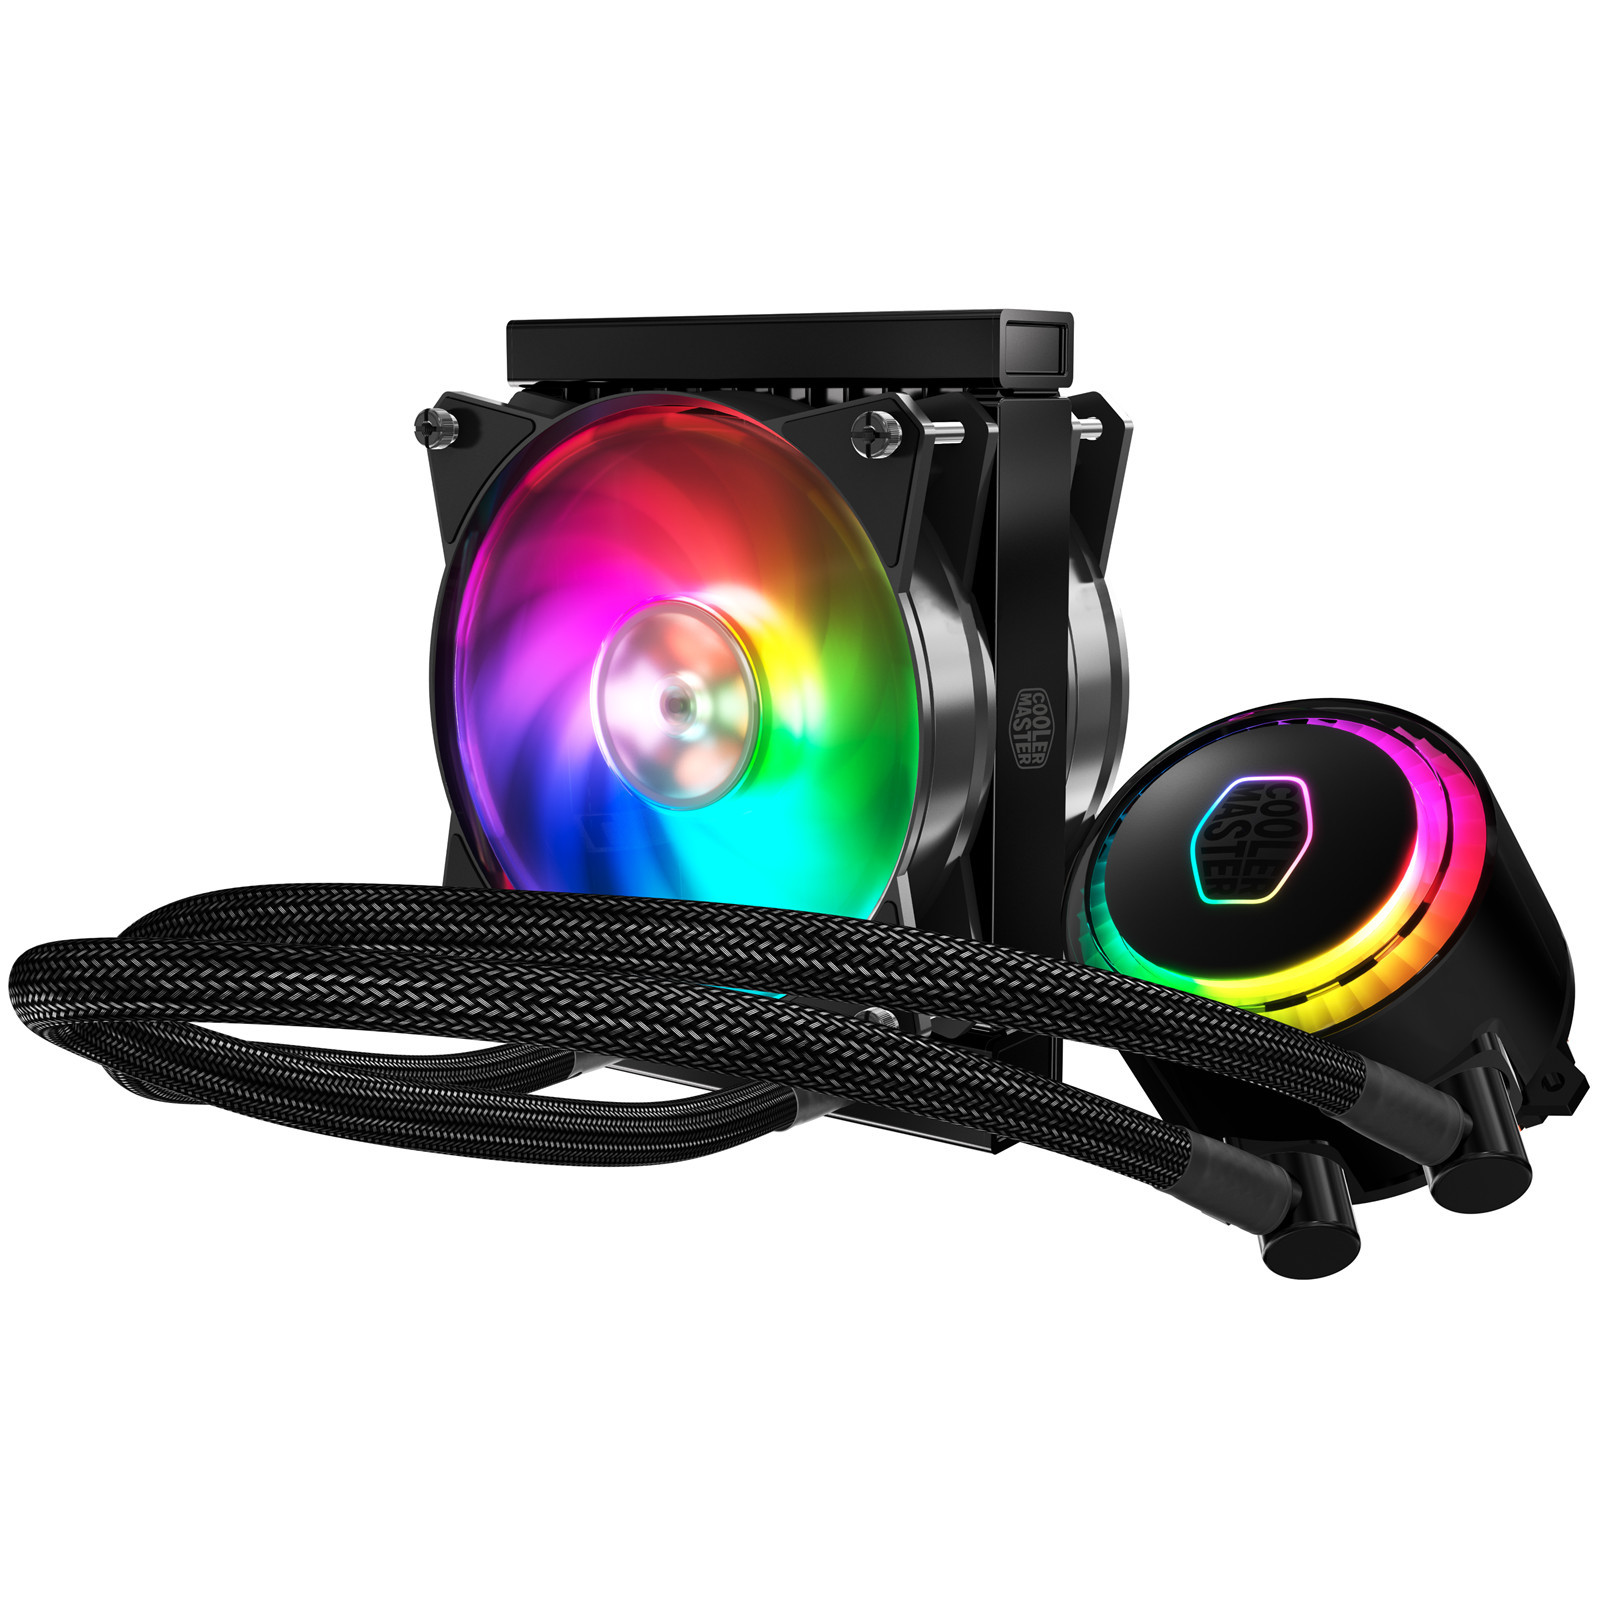 Cooler Master MasterLiquid ML120R All in One Watercooling with Addressable RGB 120MM fan - image